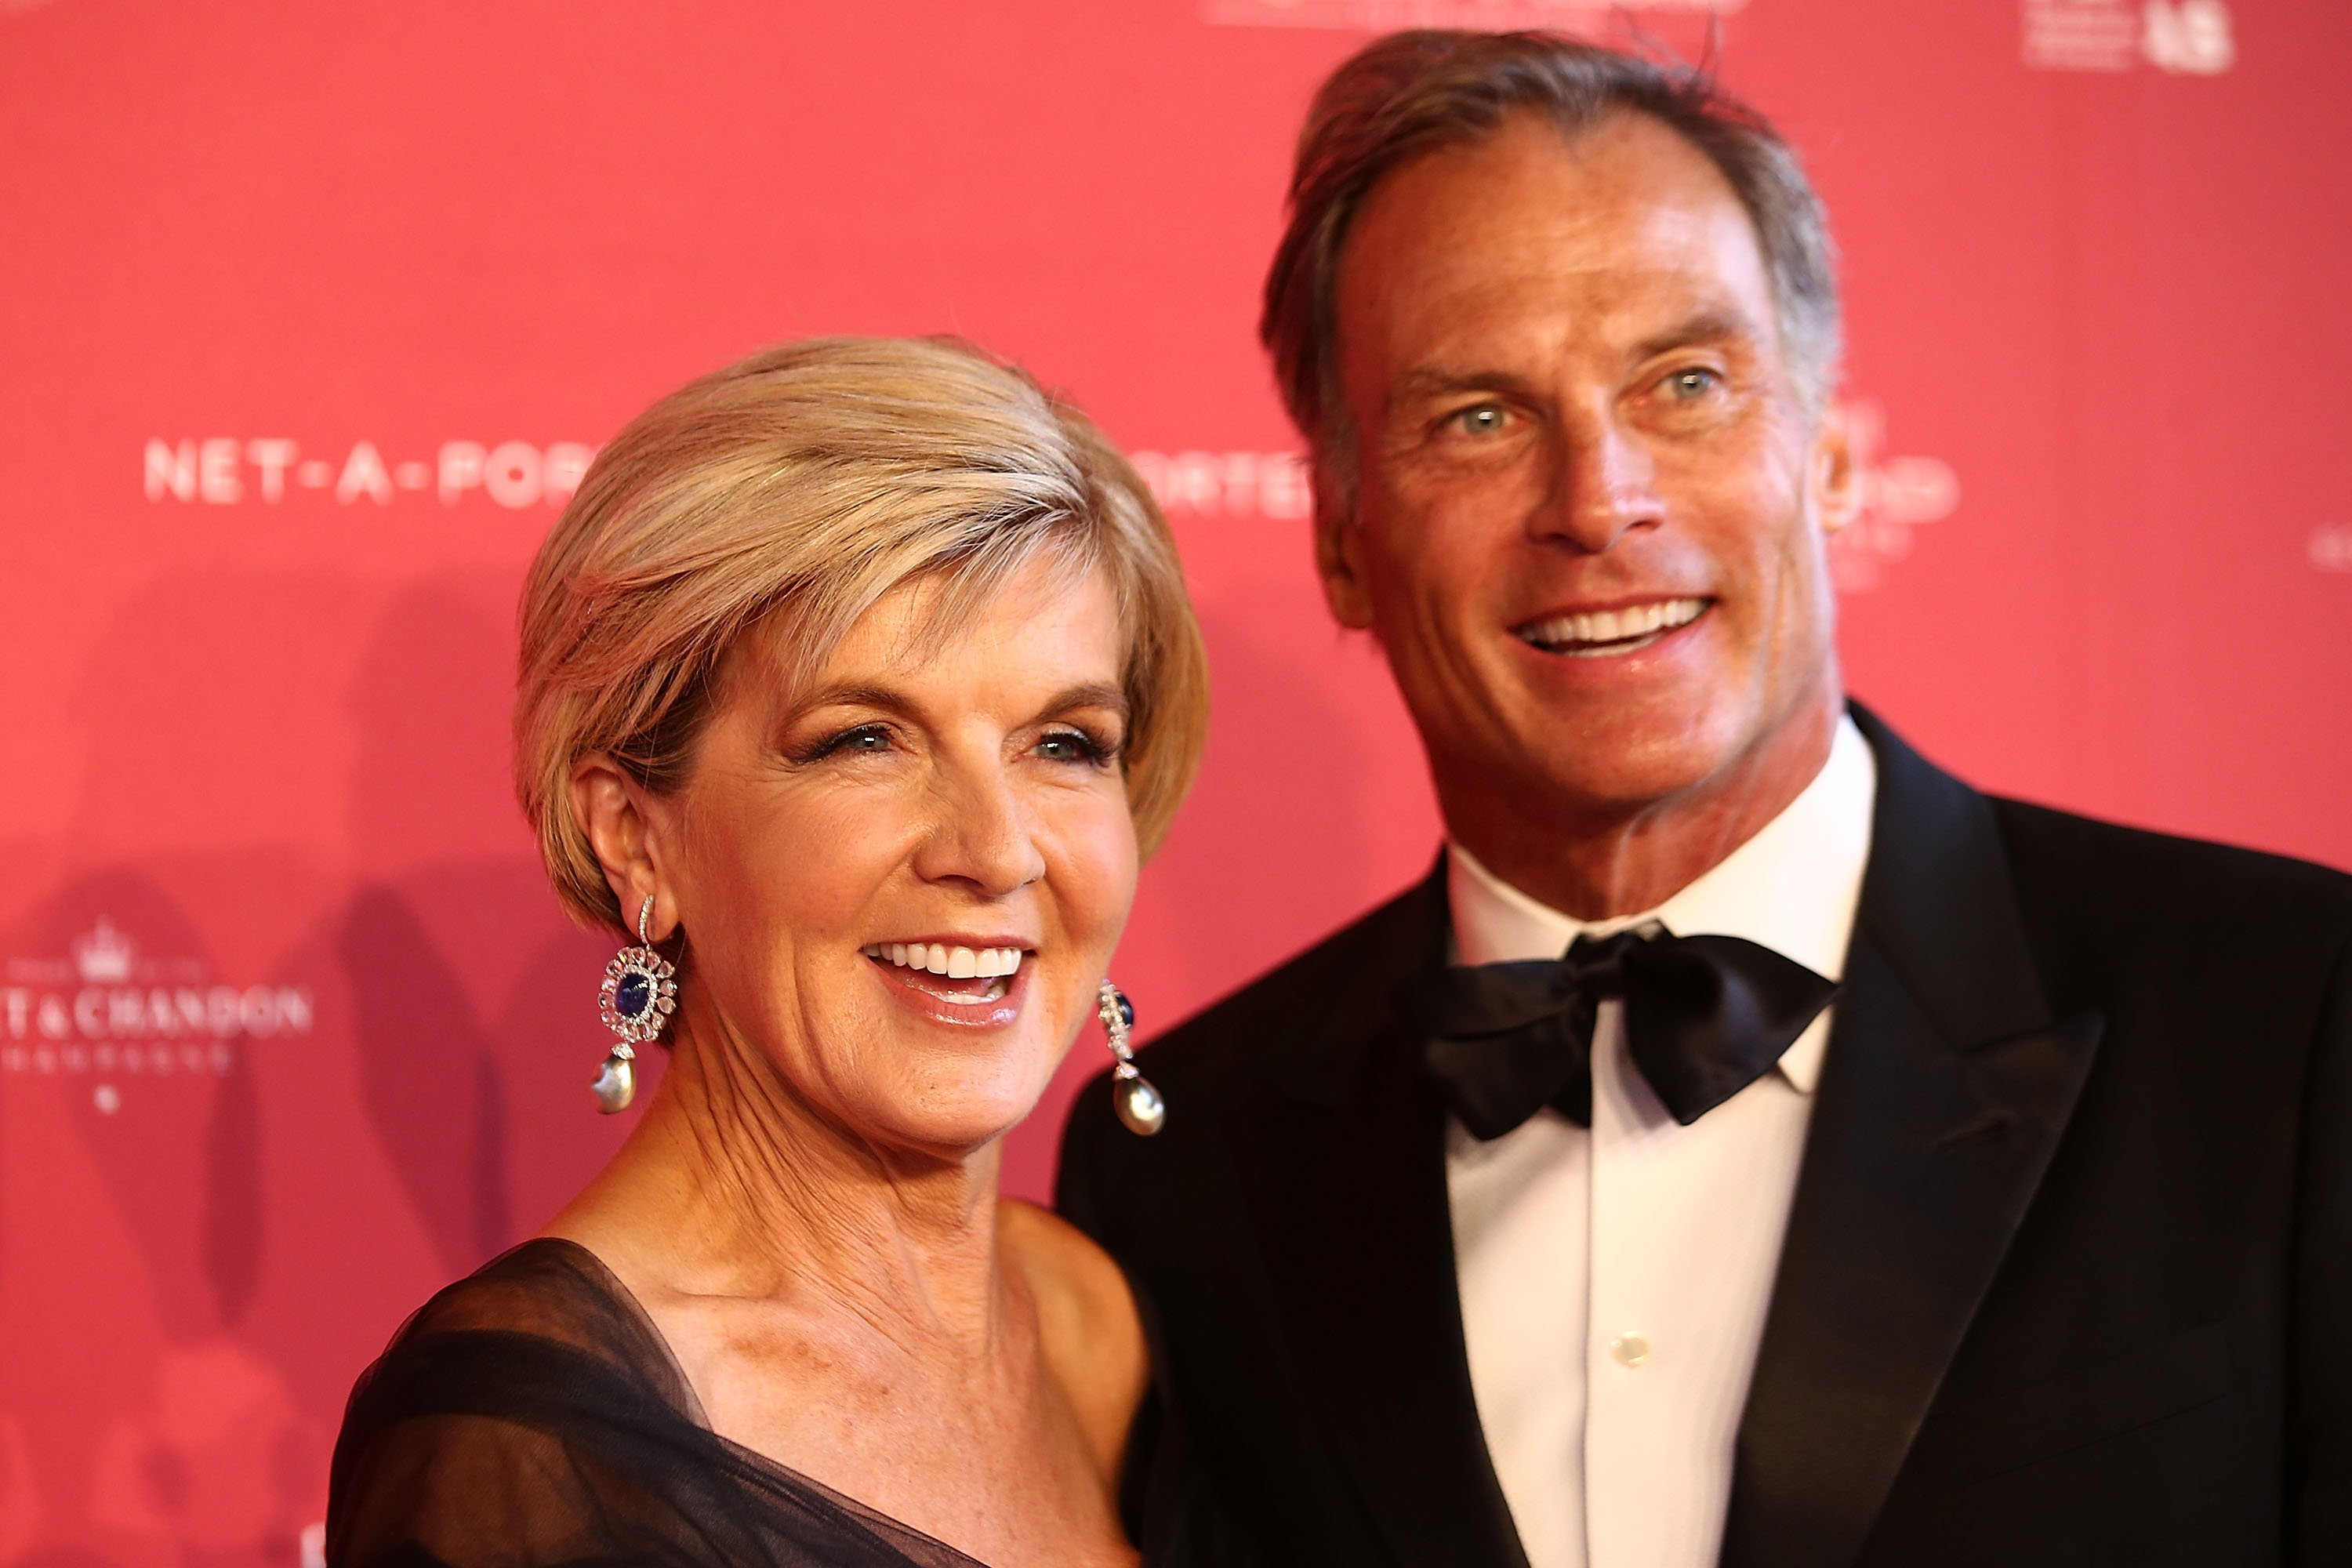 Julie Bishop and husband David Panton at the Powerhouse Museum in Sydney, Australia | Photo: Getty Images